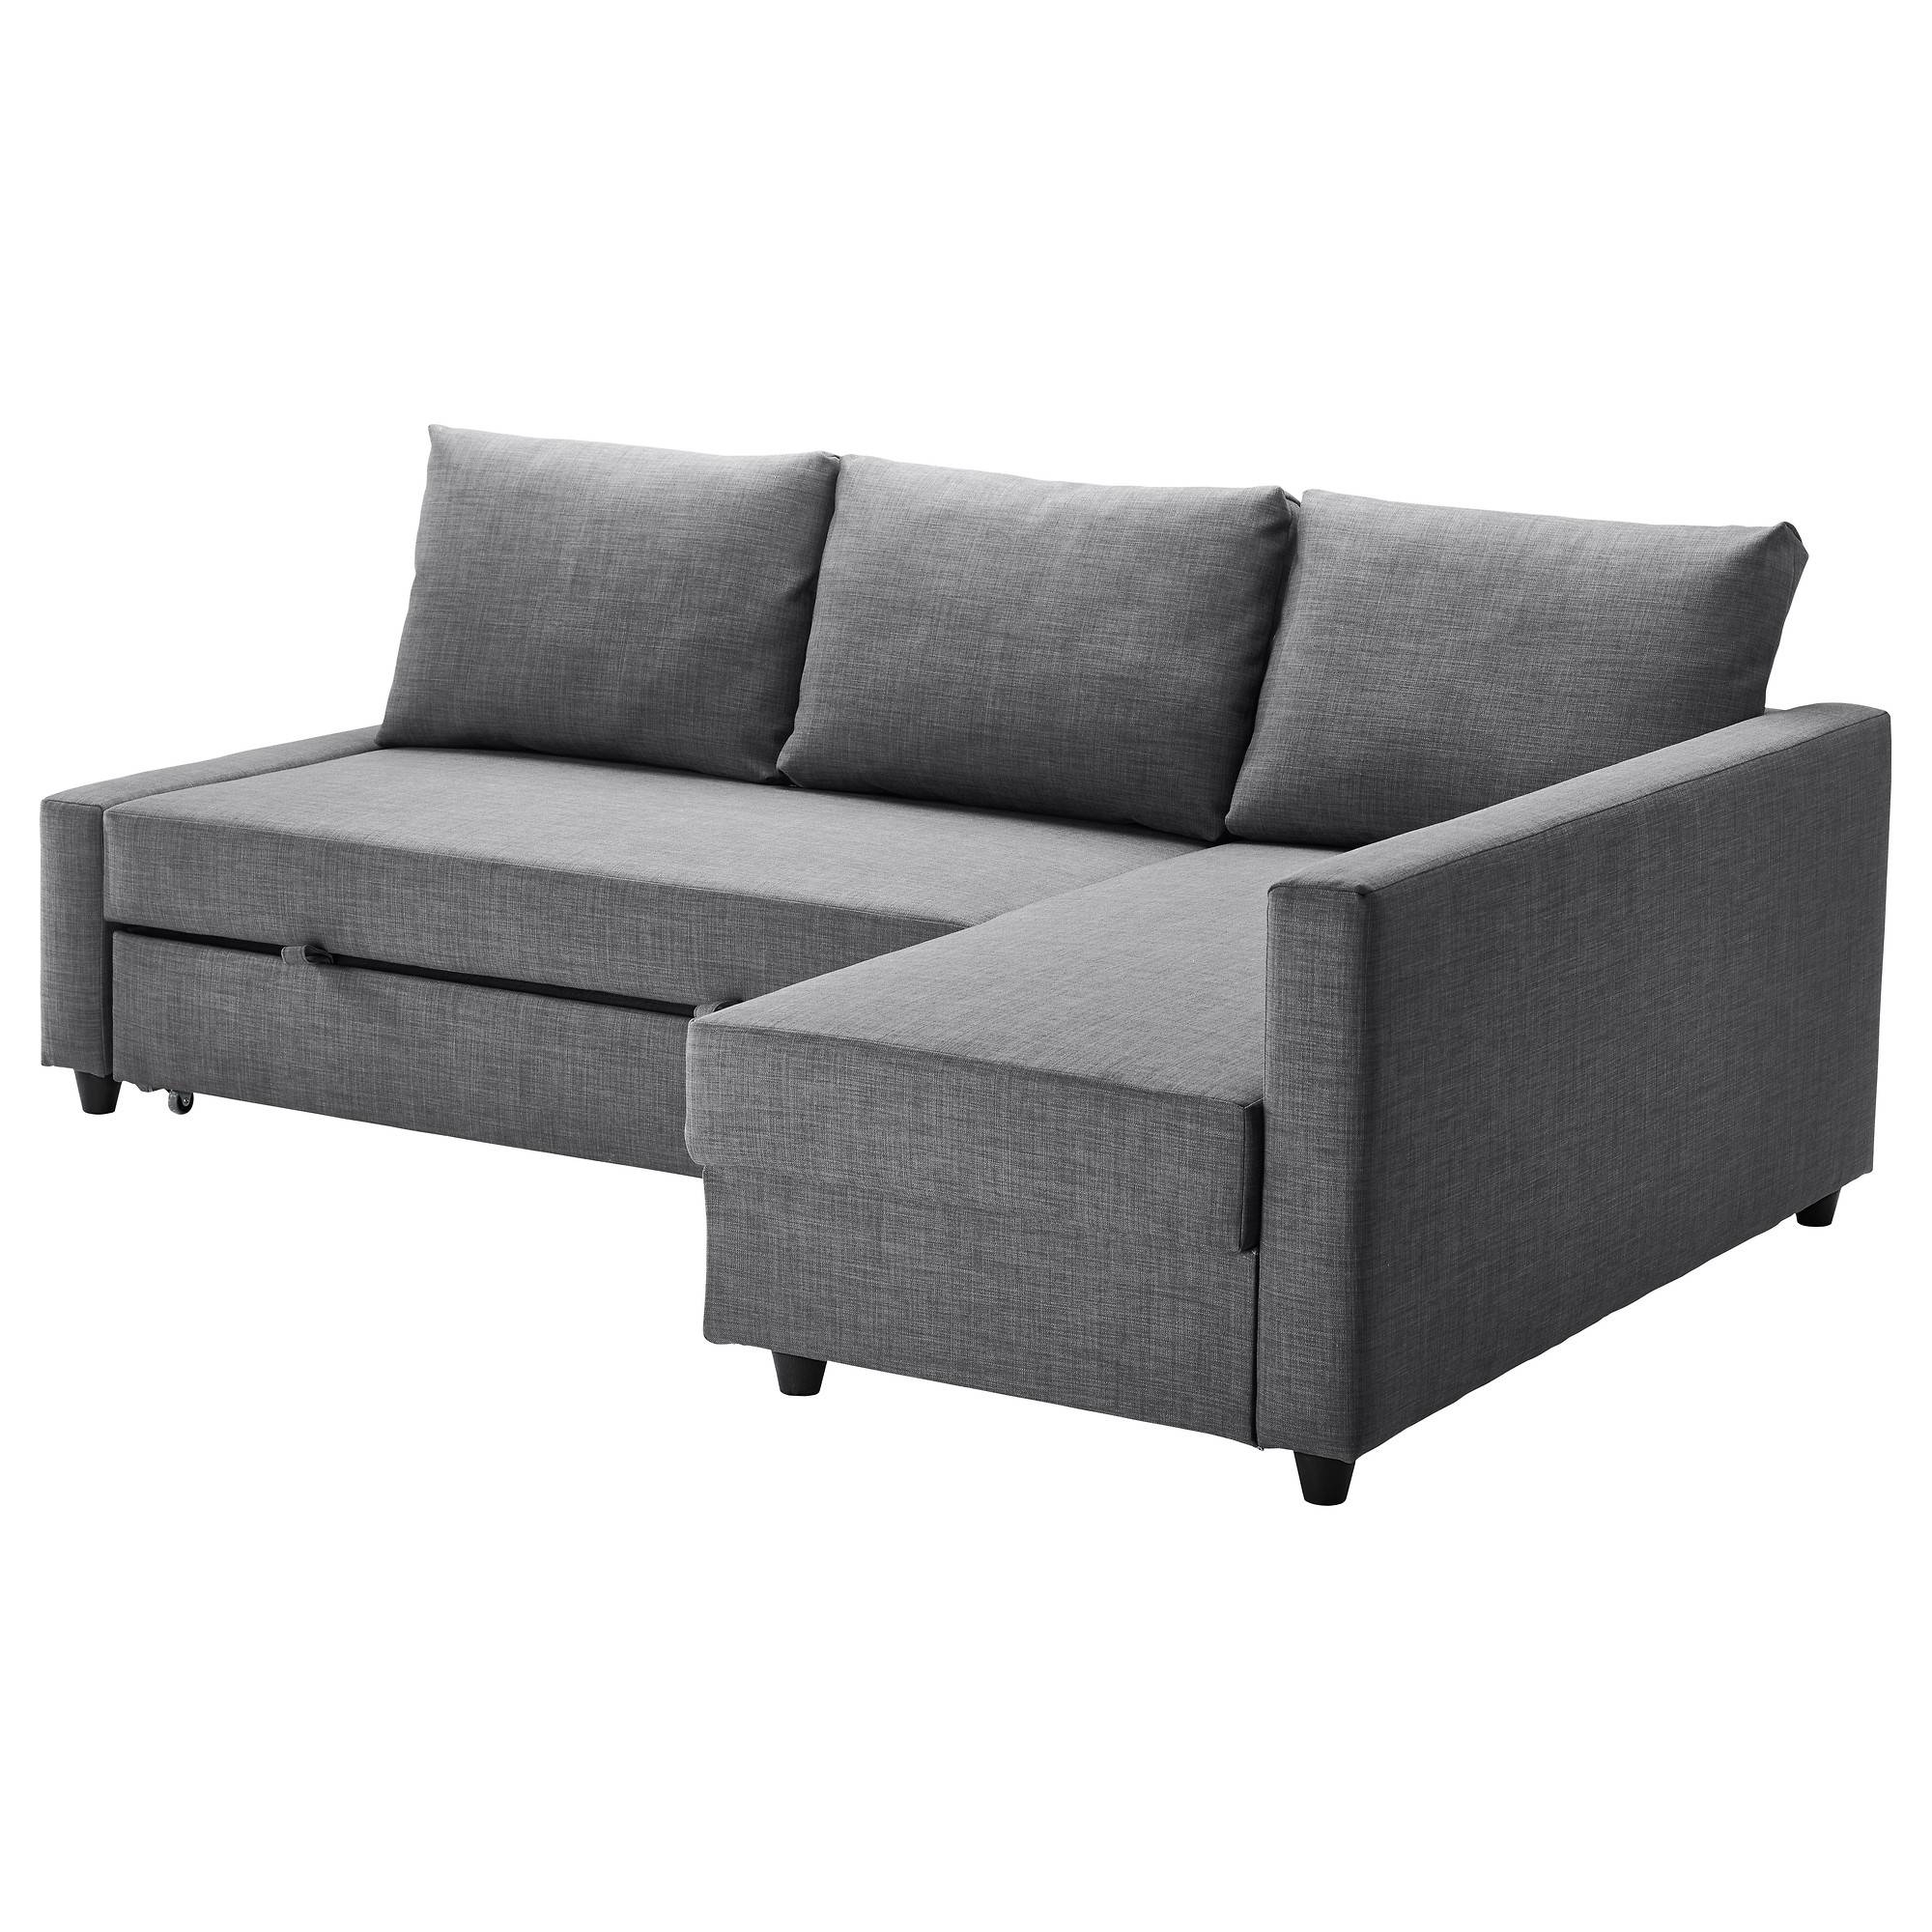 Friheten Corner Sofa-Bed With Storage Skiftebo Dark Grey - Ikea within Sofa Beds With Storages (Image 13 of 30)